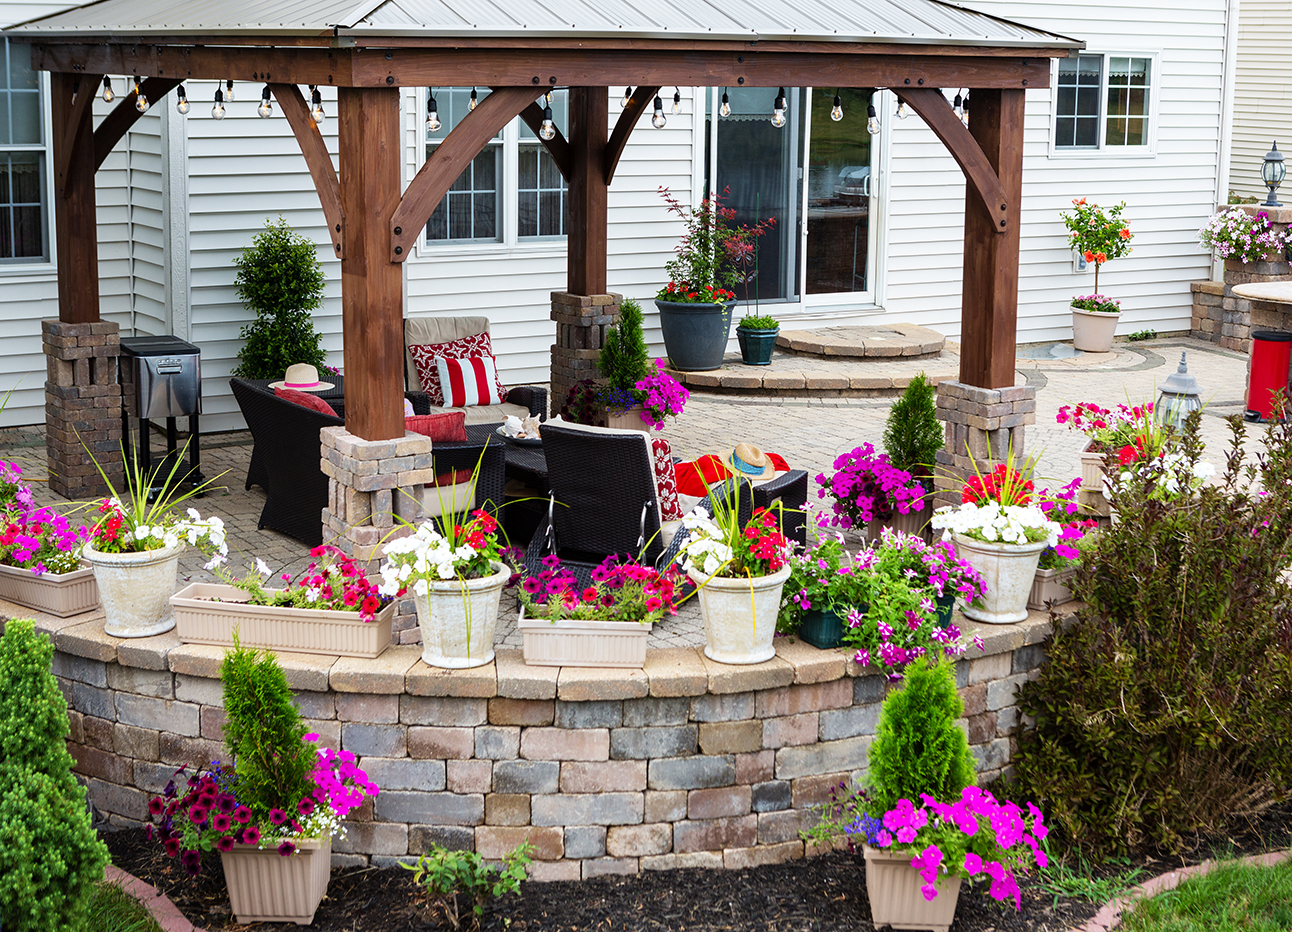 A photo of a backyarrd patio with a pergola and lots of flowers.